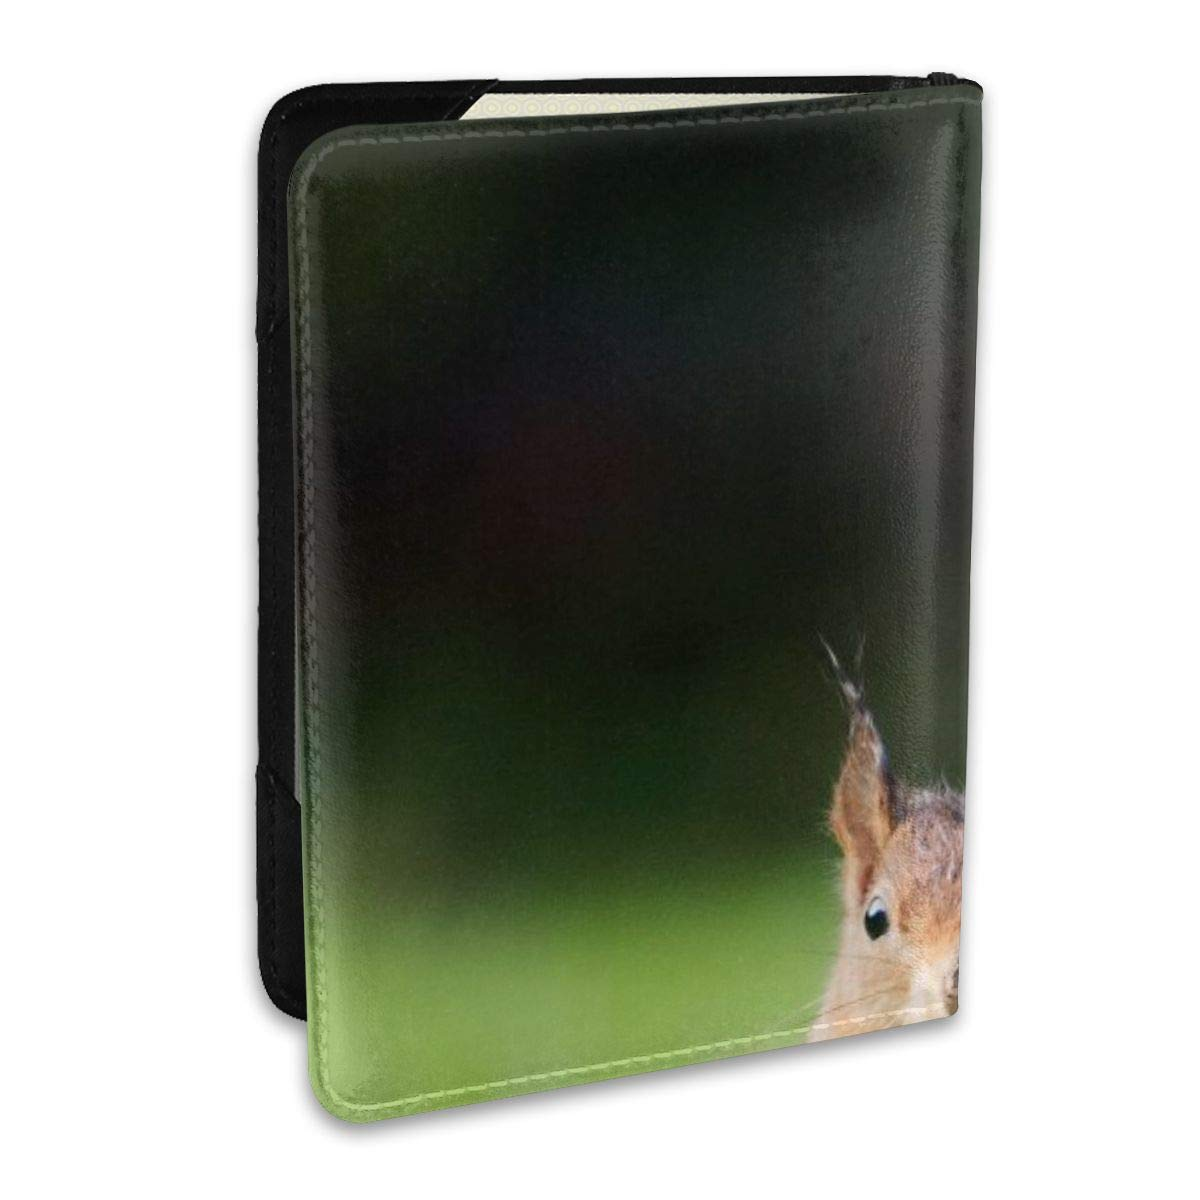 Squirrel Park Field Fashion Leather Passport Holder Cover Case Travel Wallet 6.5 In